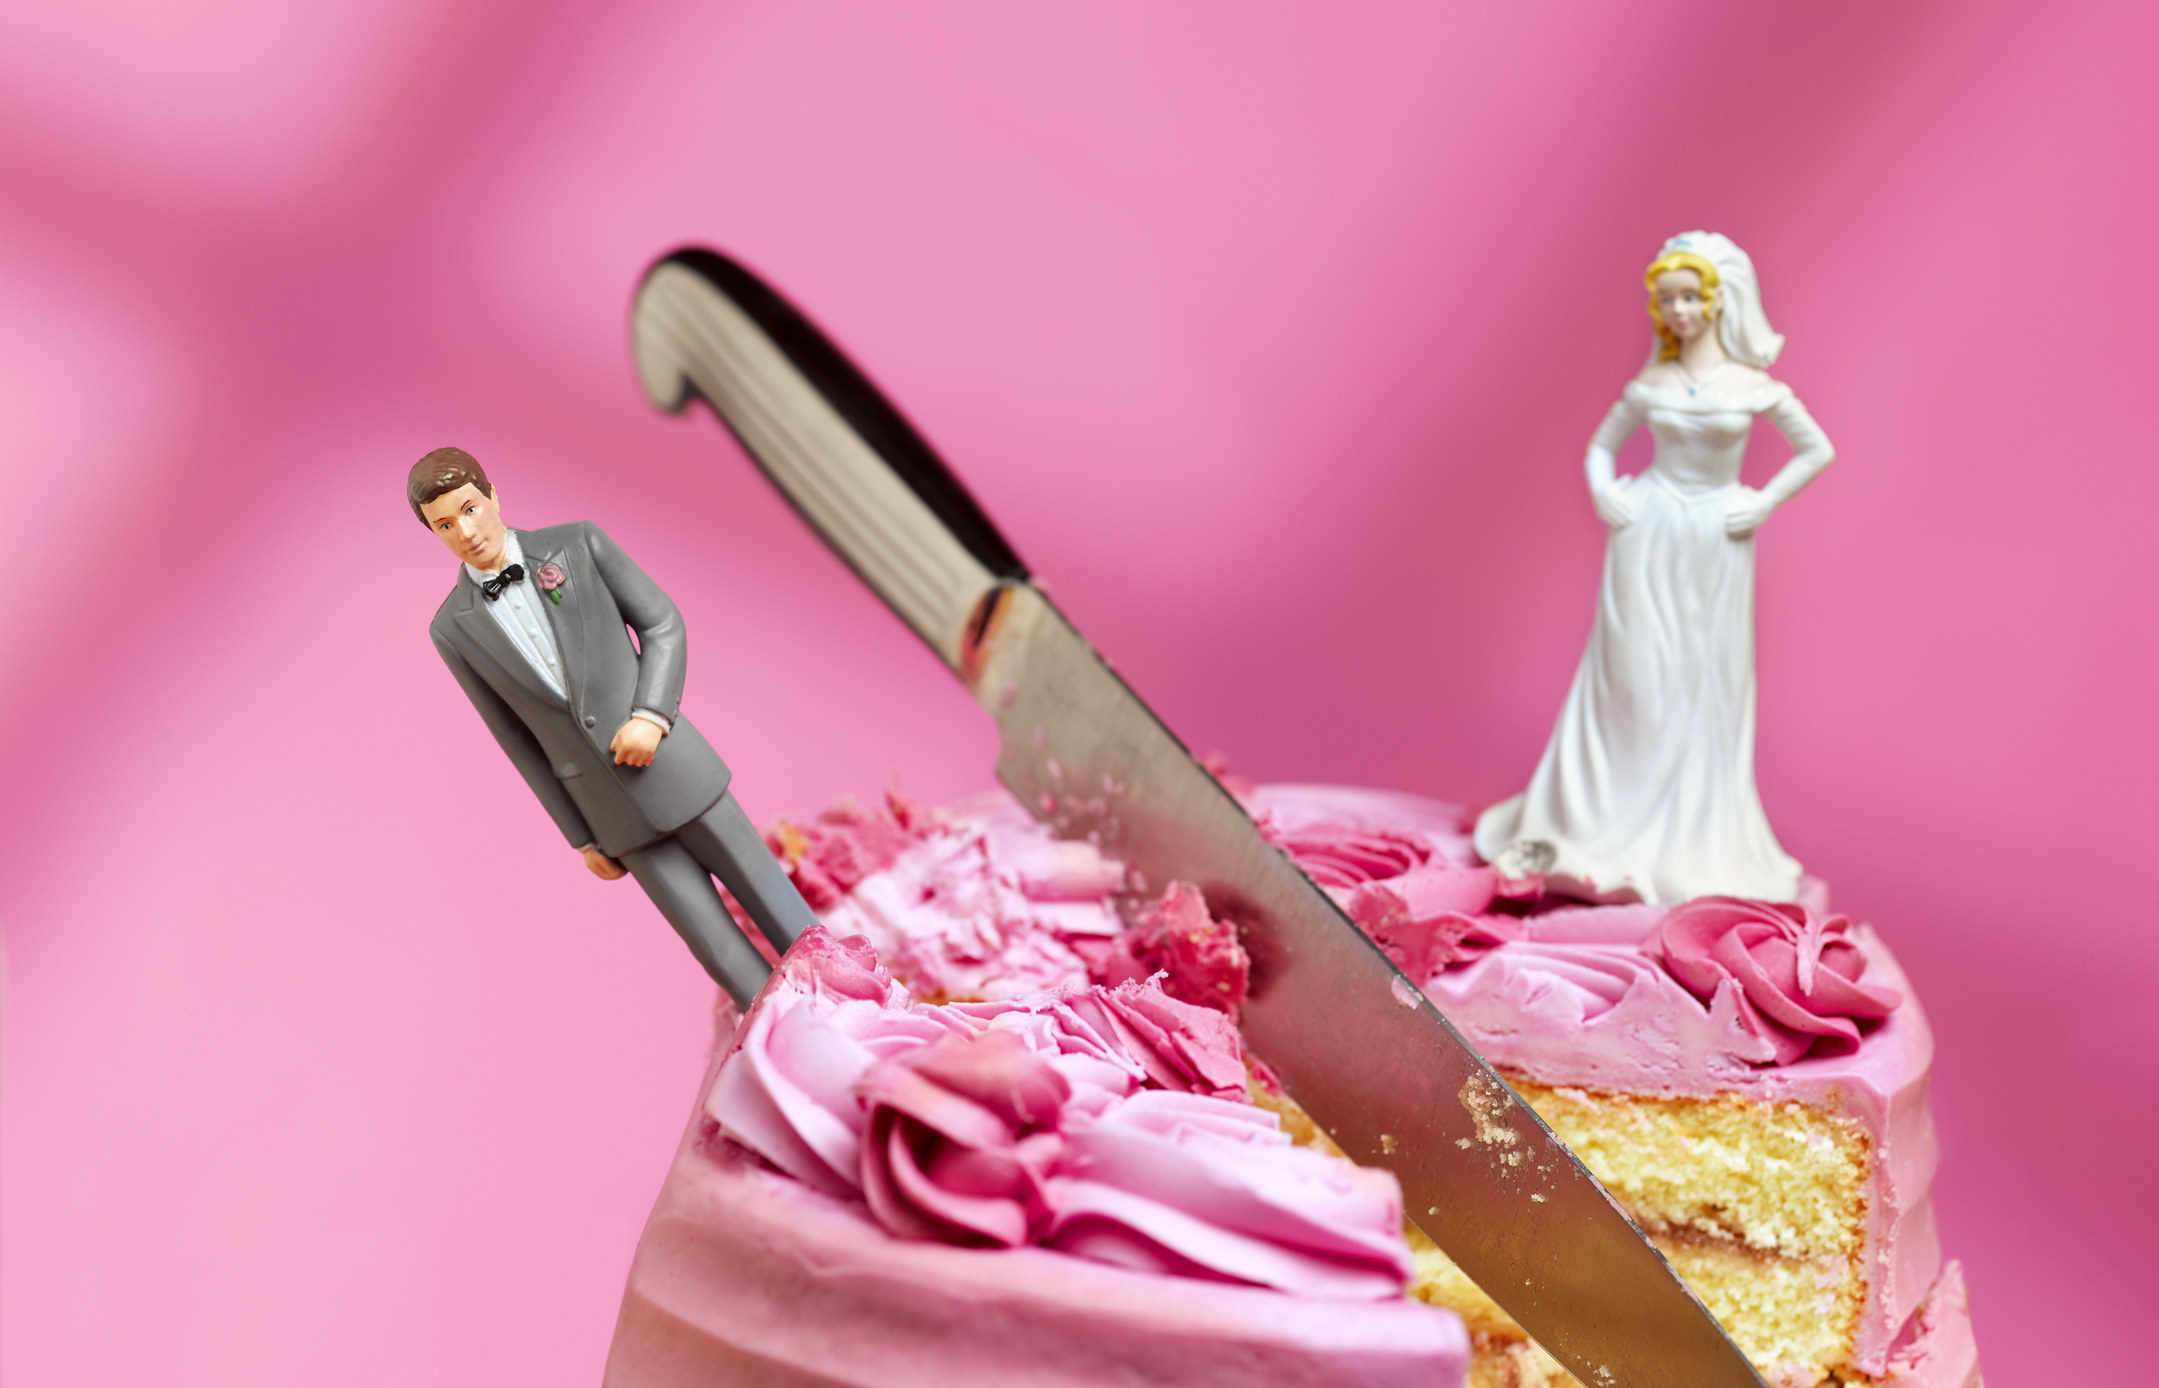 A knife cutting into a cake between figurines of a bride and groom